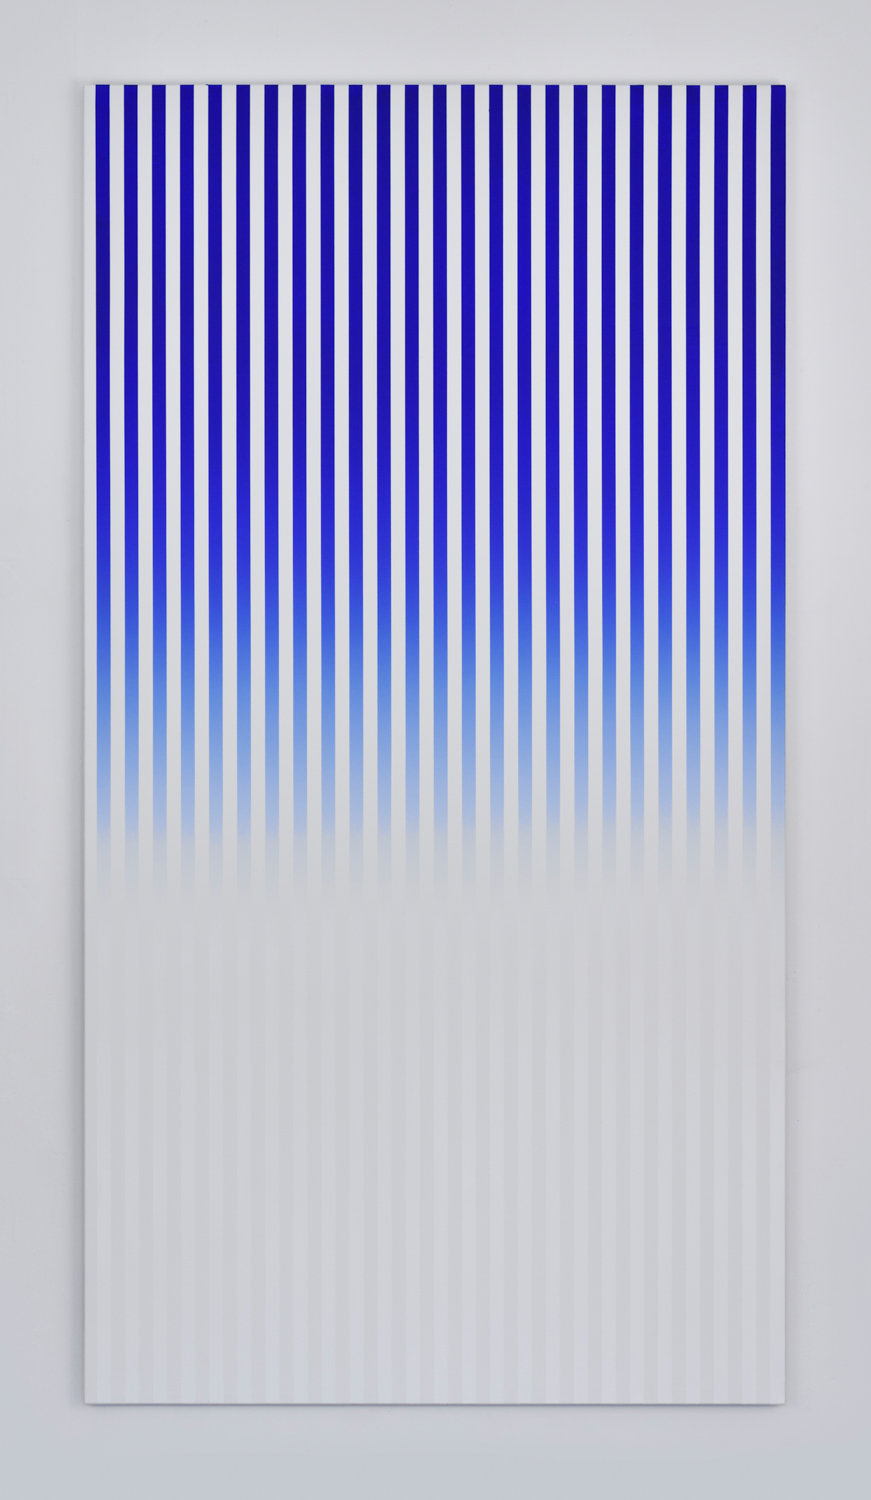 Slow Motion , 2016 acrylic on canvas 190 x 110 cm - 74 3/4 x 43 1/4 inches